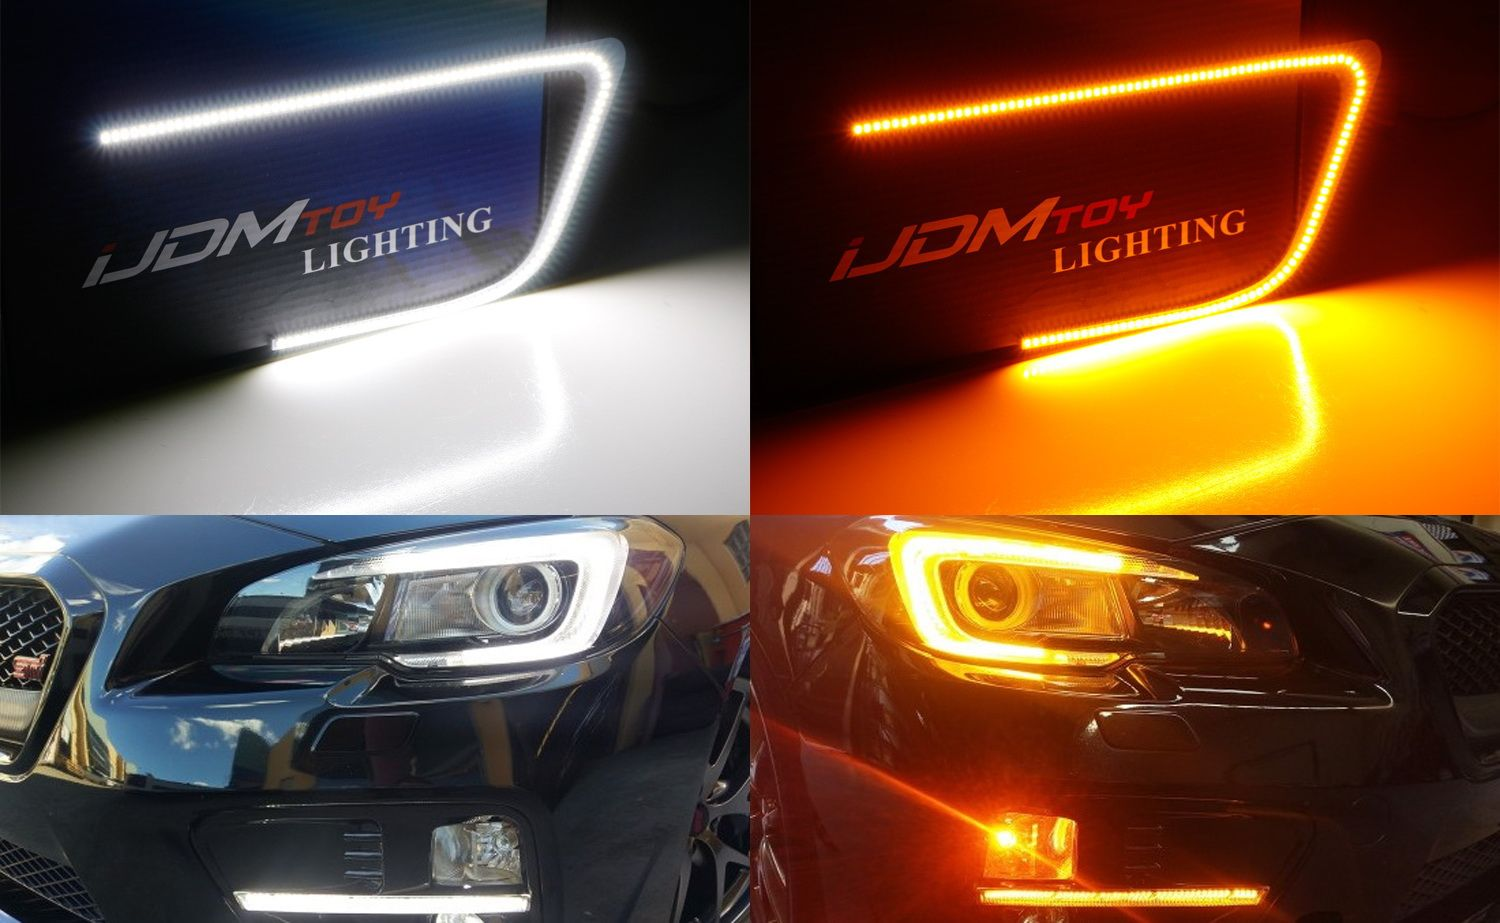 Our Dual Color Switchback Led C Ring Drl Turn Signals Fit Seamlessly In Your Wrx S Headlights And Pairs Well With Our Led Daytime Running Subaru Wrx Wrx Subaru